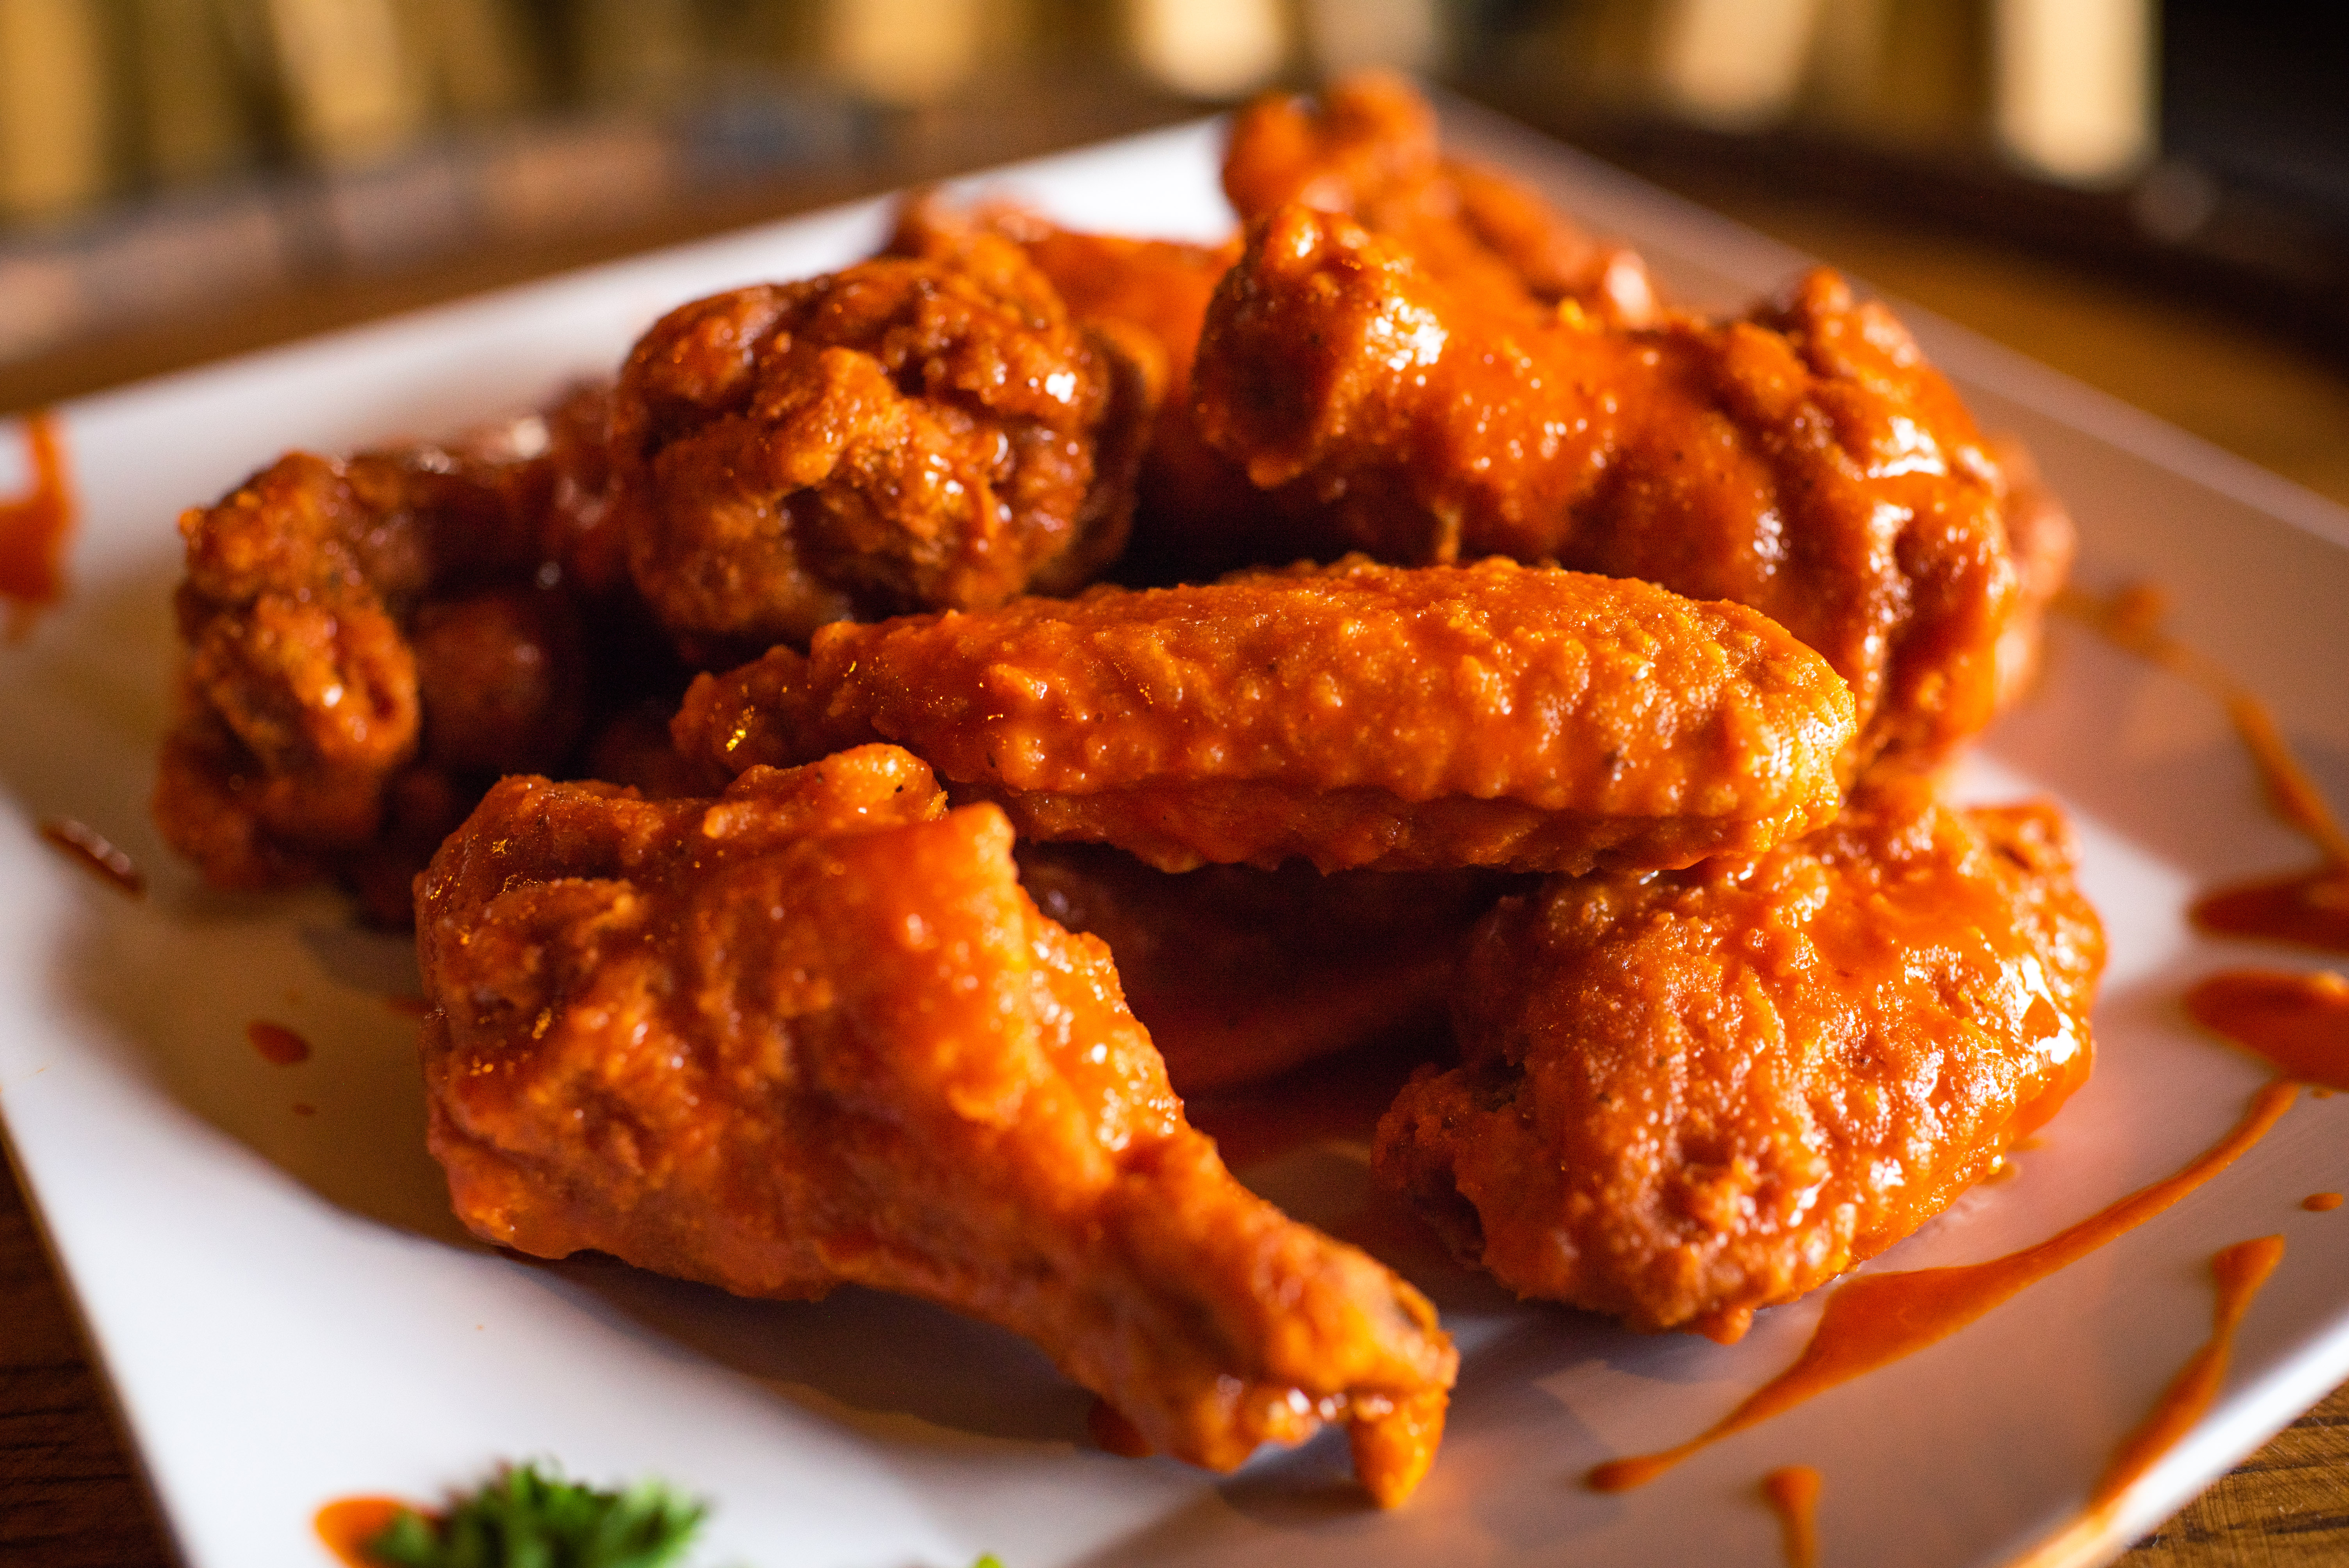 Our famous wings